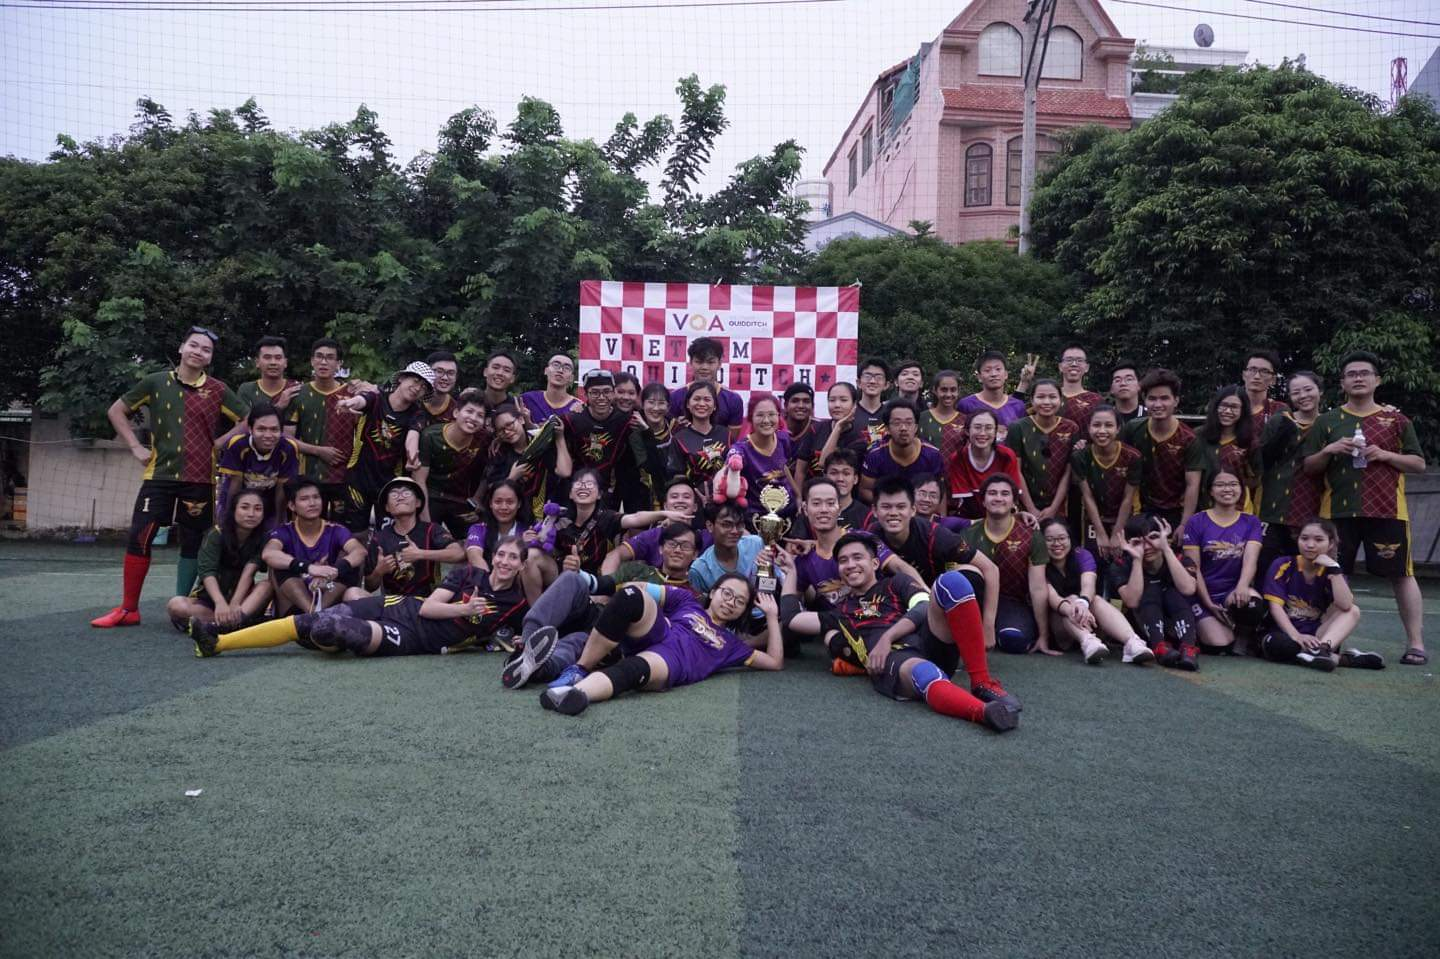 Vietnam's first 'quidditch' cup brings to life Harry Potter's fictional broomstick-mounted sport